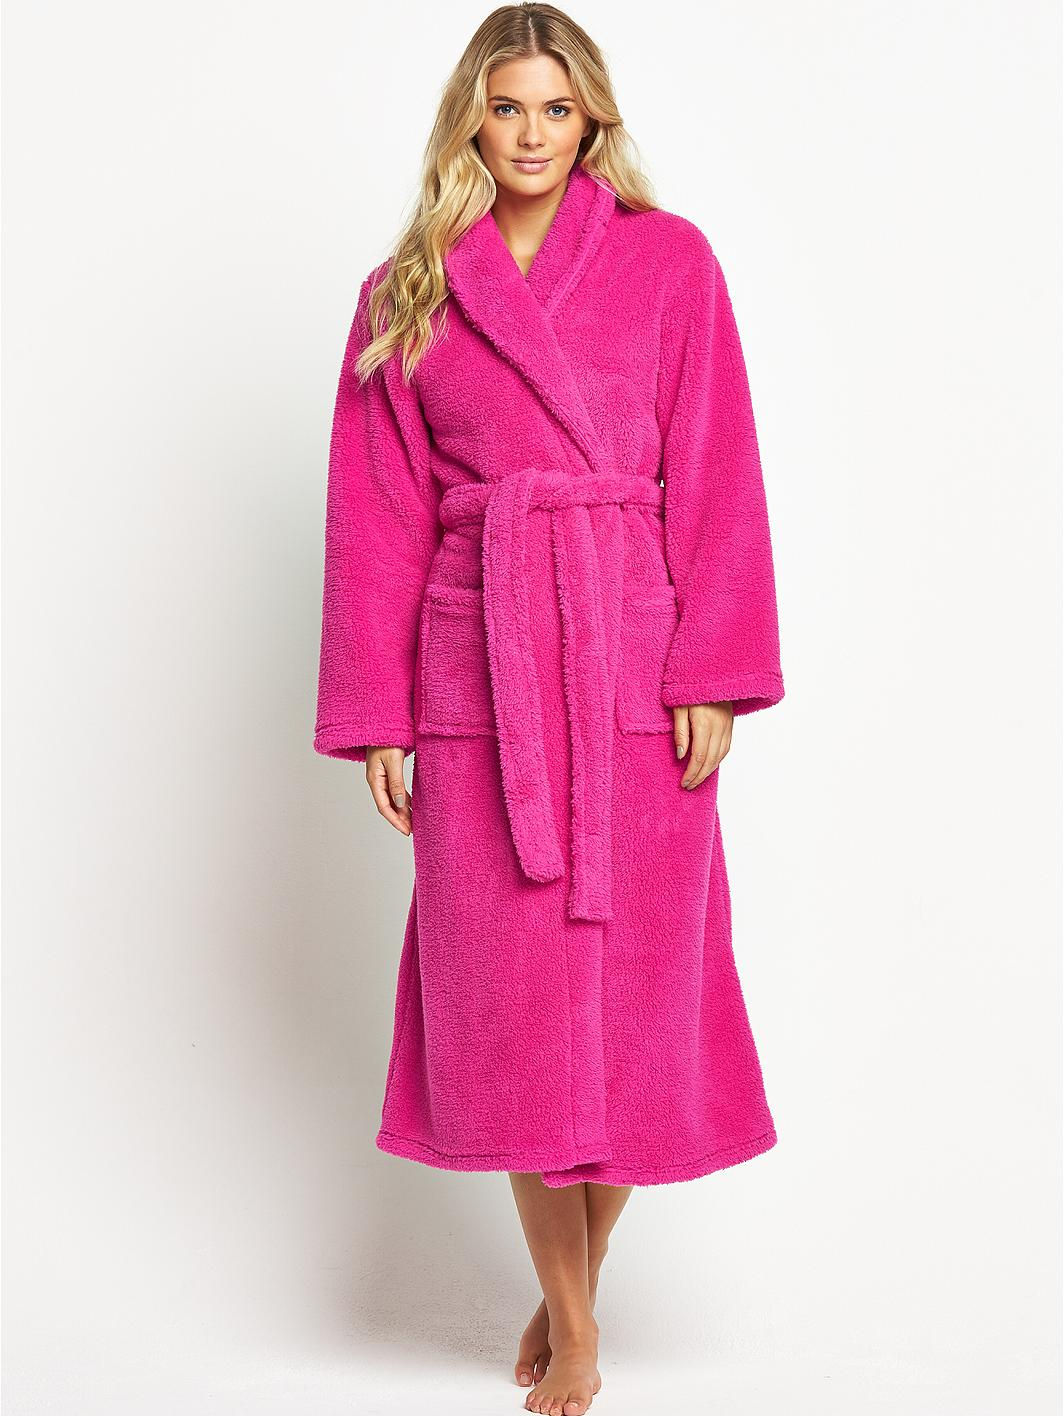 Women's Plush Robes. Showing 40 of results that match your query. Search Product Result. Product - George. Product Image. Price. In-store purchase only. Product Title. George. Product - Sleep Chic Womens Plush White Snowflake Print Bath Robe Plush Housecoat. Product Image. Price $ Product Title. Sleep Chic Womens Plush White.